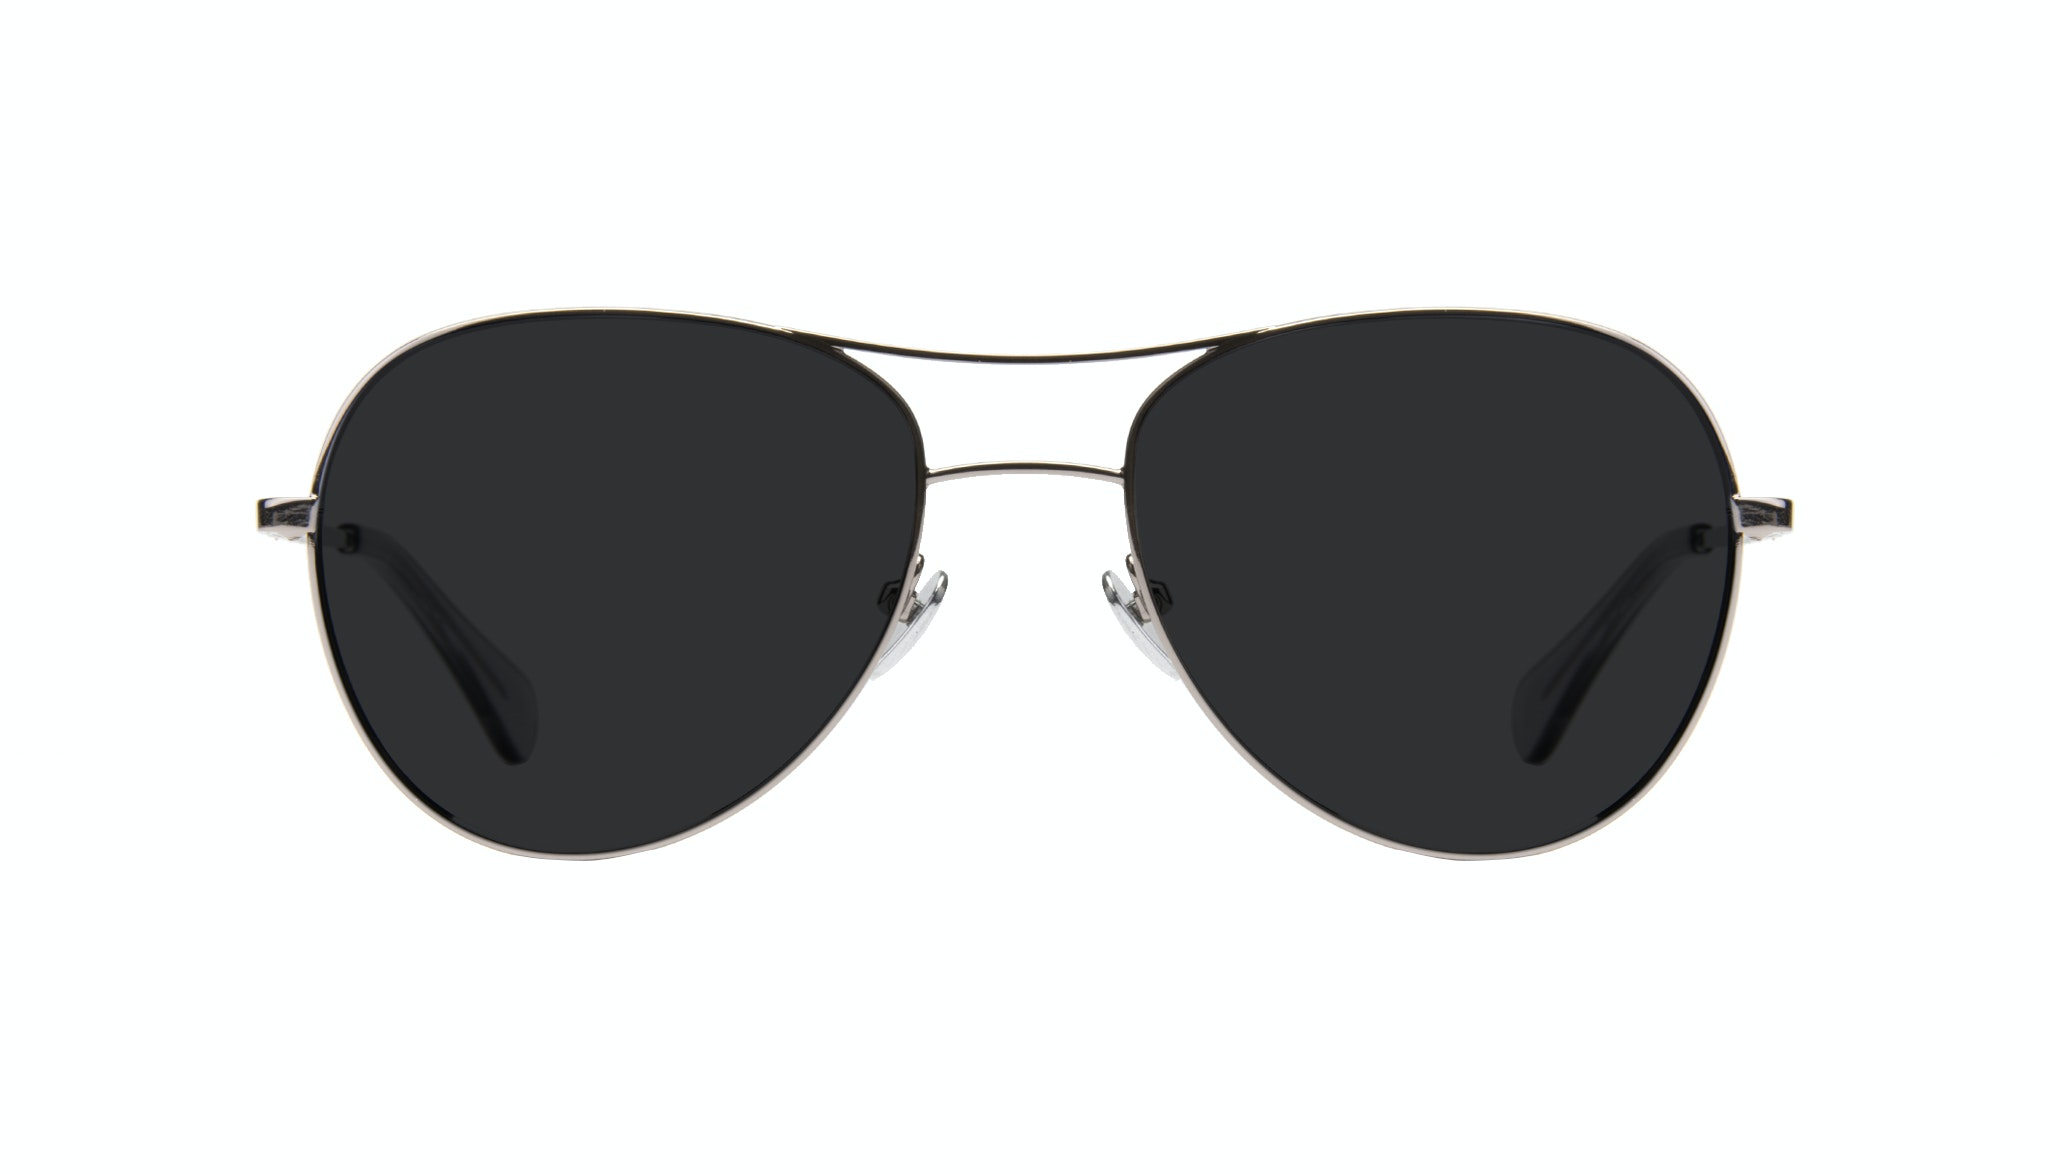 Affordable Fashion Glasses Aviator Sunglasses Women Want Silver Front